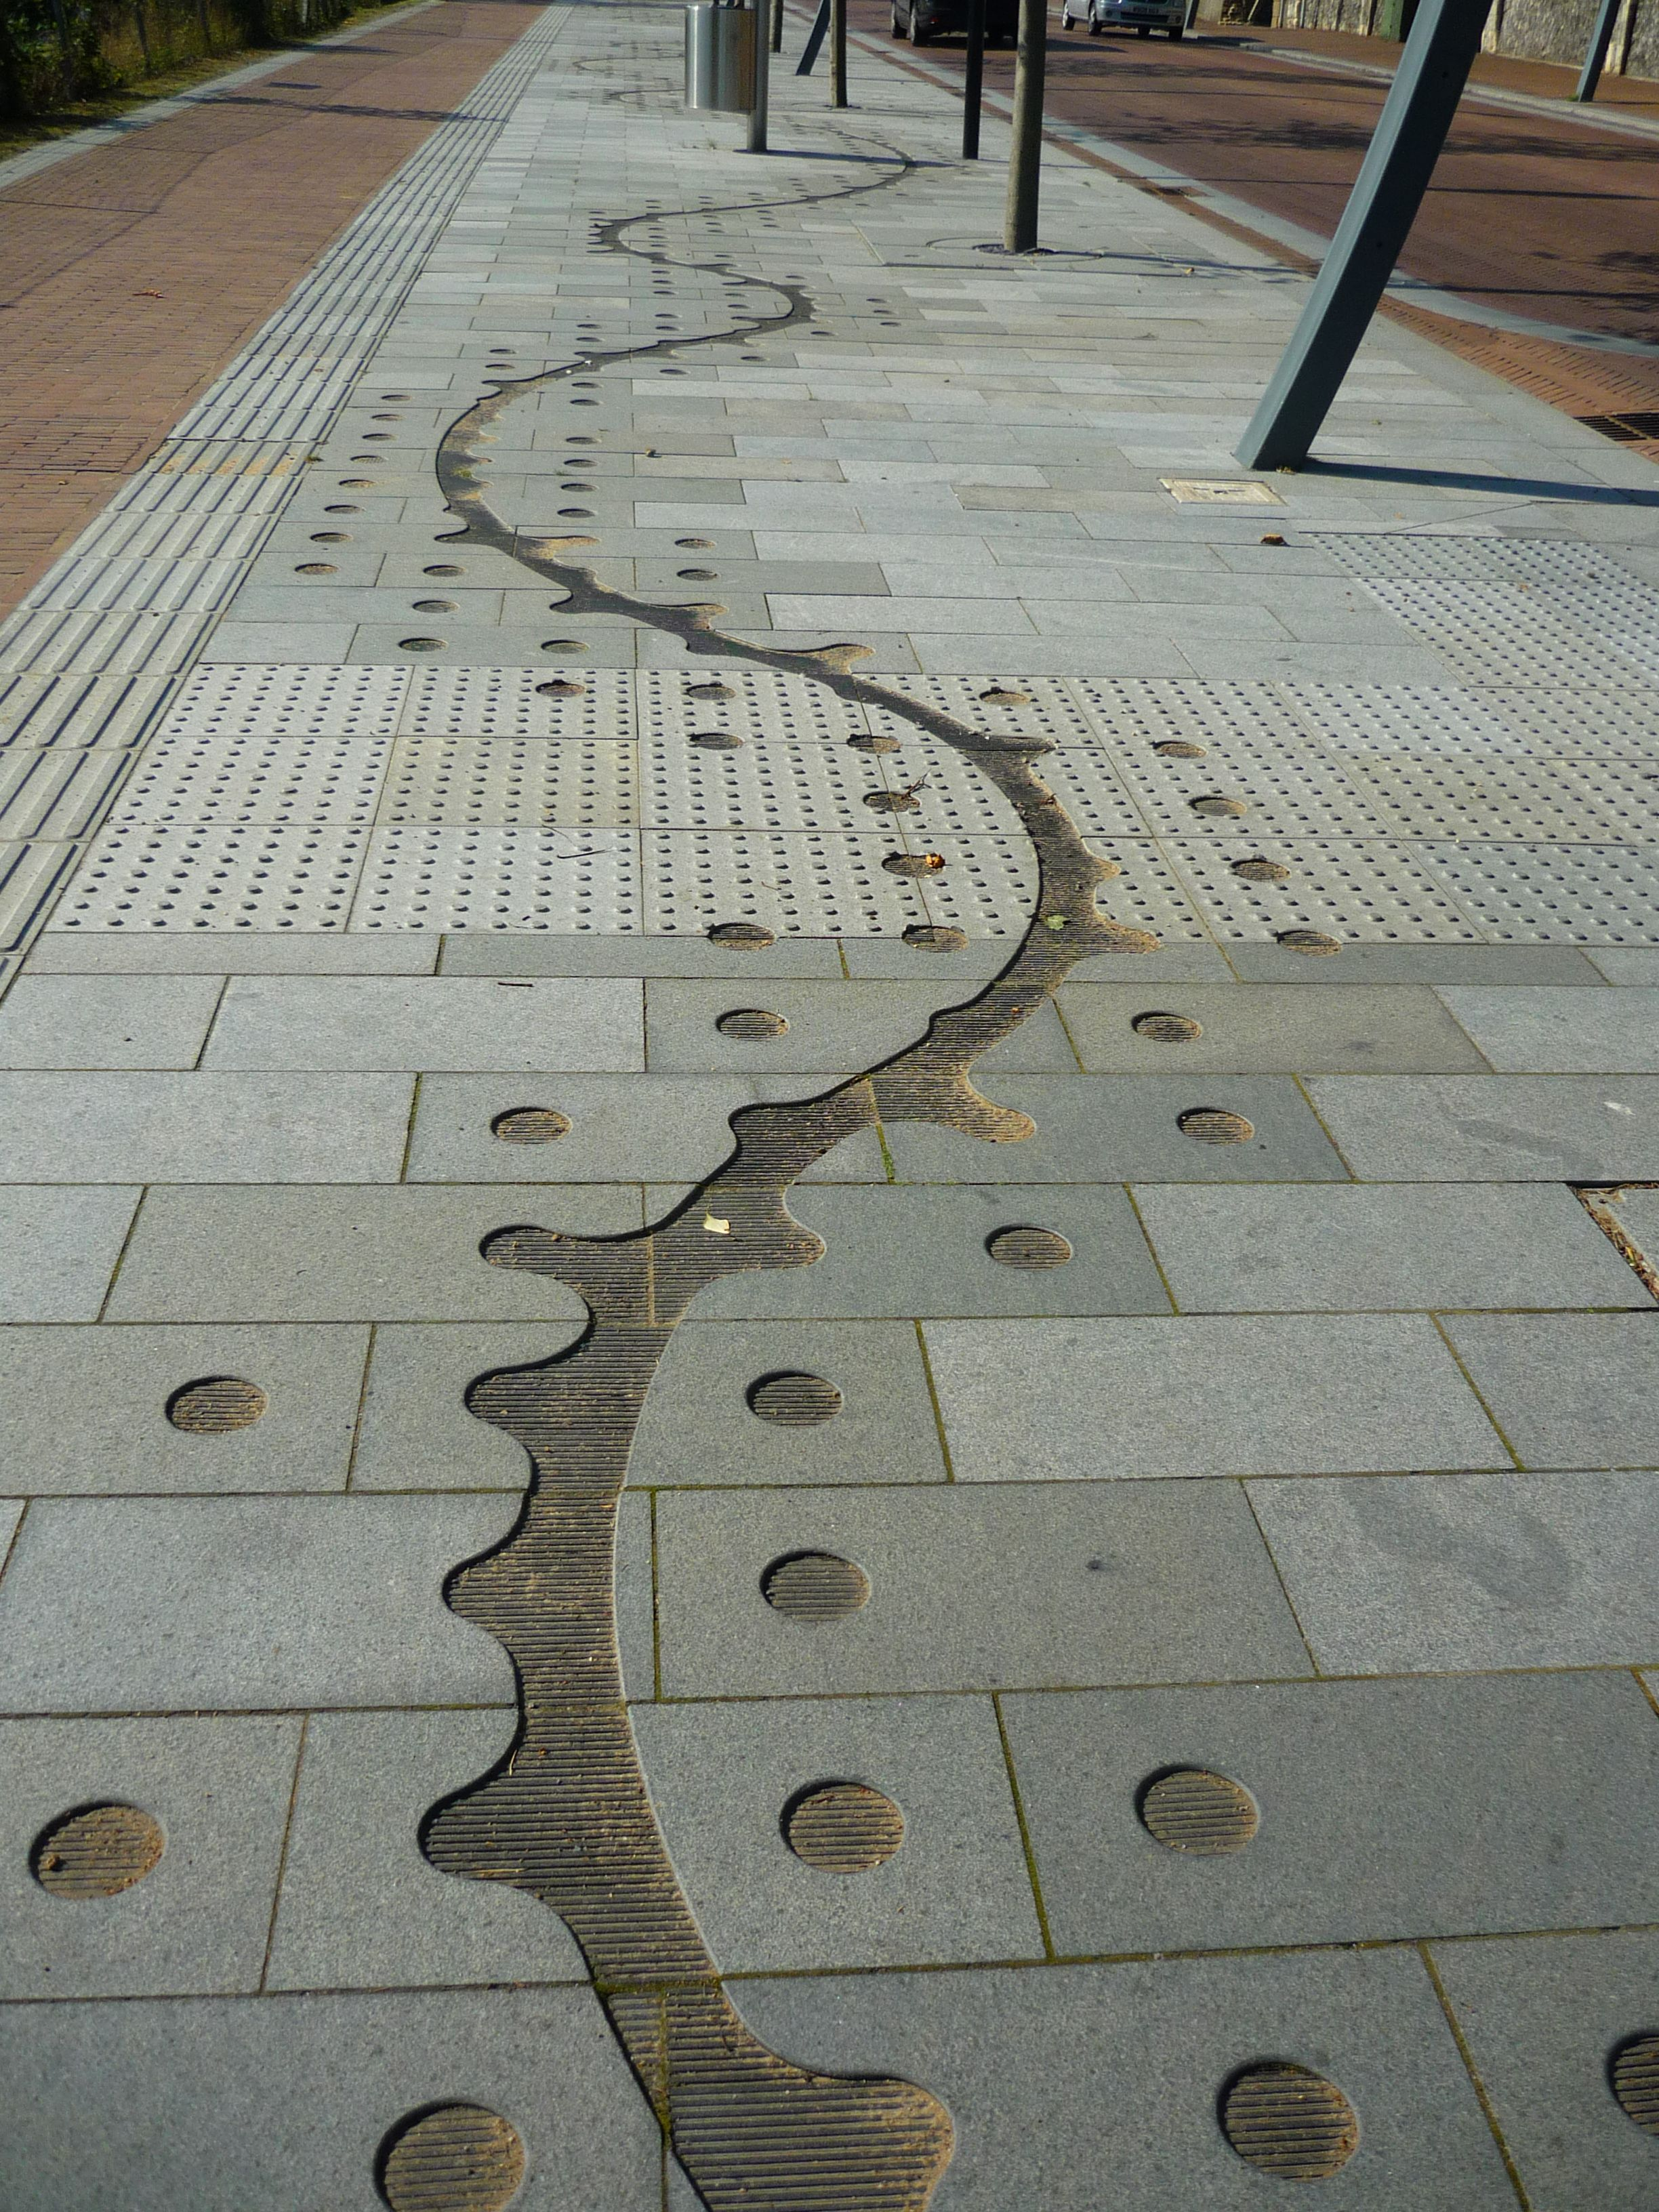 Pin By Leslie Johnson On Street Elements Pavement Design